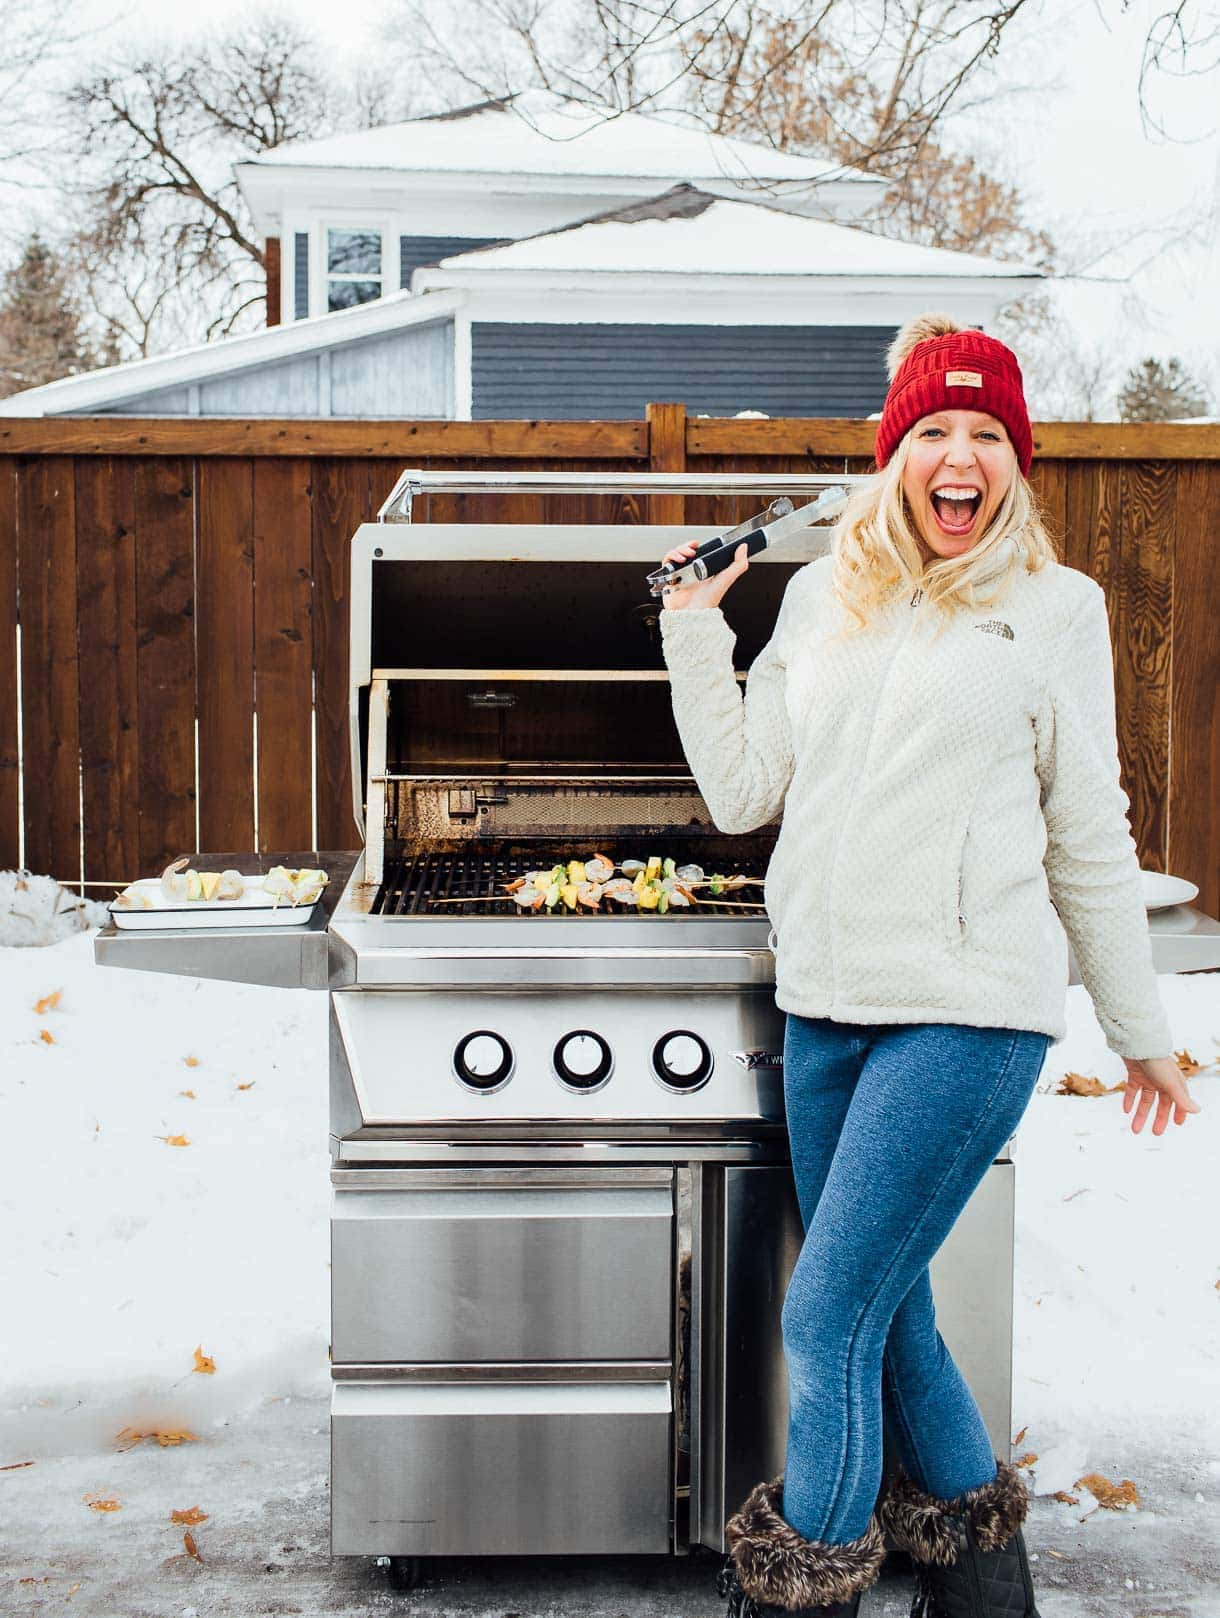 girl grilling outdoors in winter